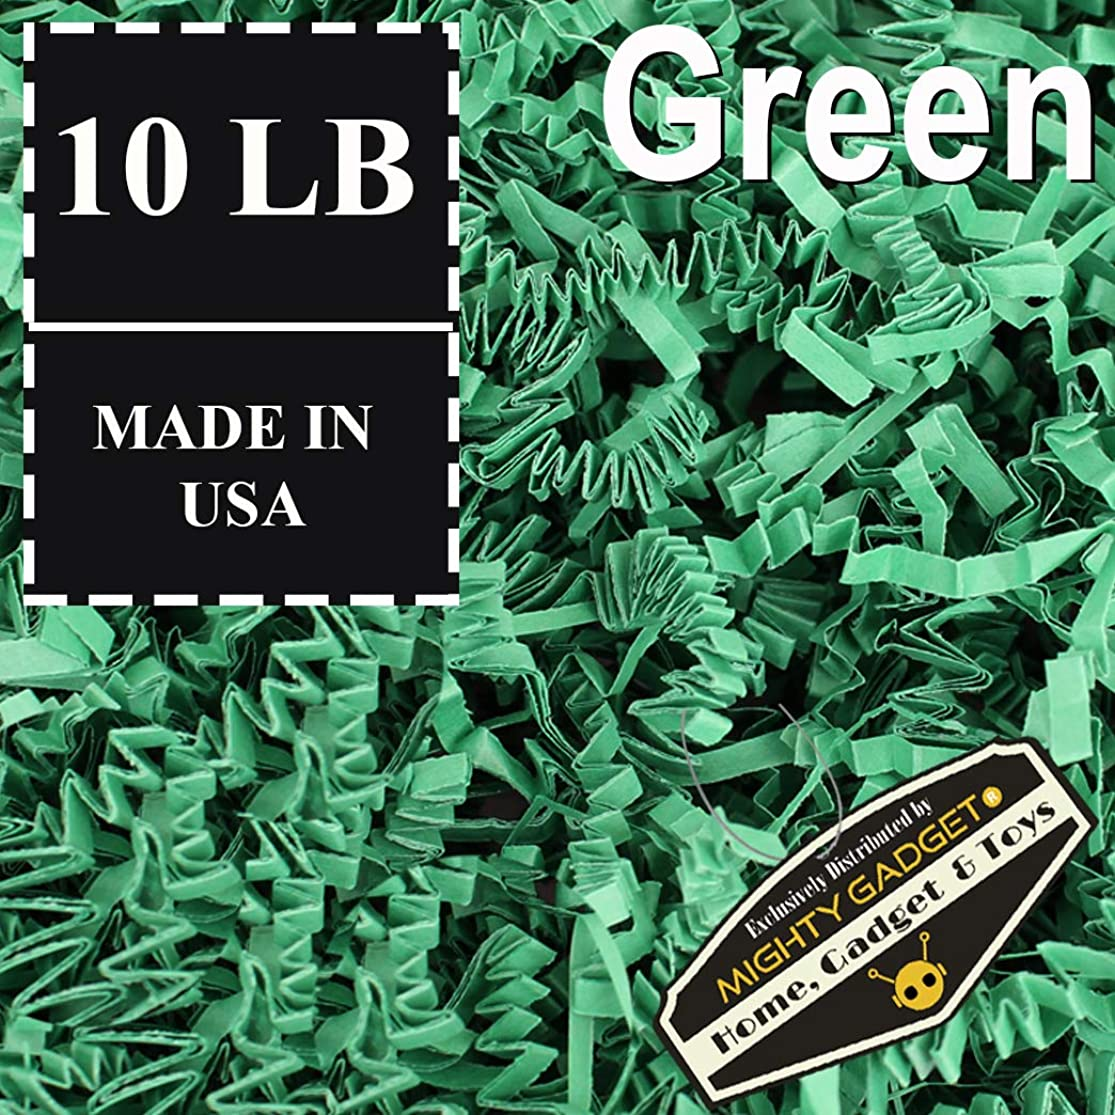 Mighty Gadget Brand 10 LB Value Pack Crinkle Cut Paper Shred Filler for Packing and Filling Gift Baskets, Gift Boxes Natural Craft Bedding in Green (10 LB) kpozhpnz7